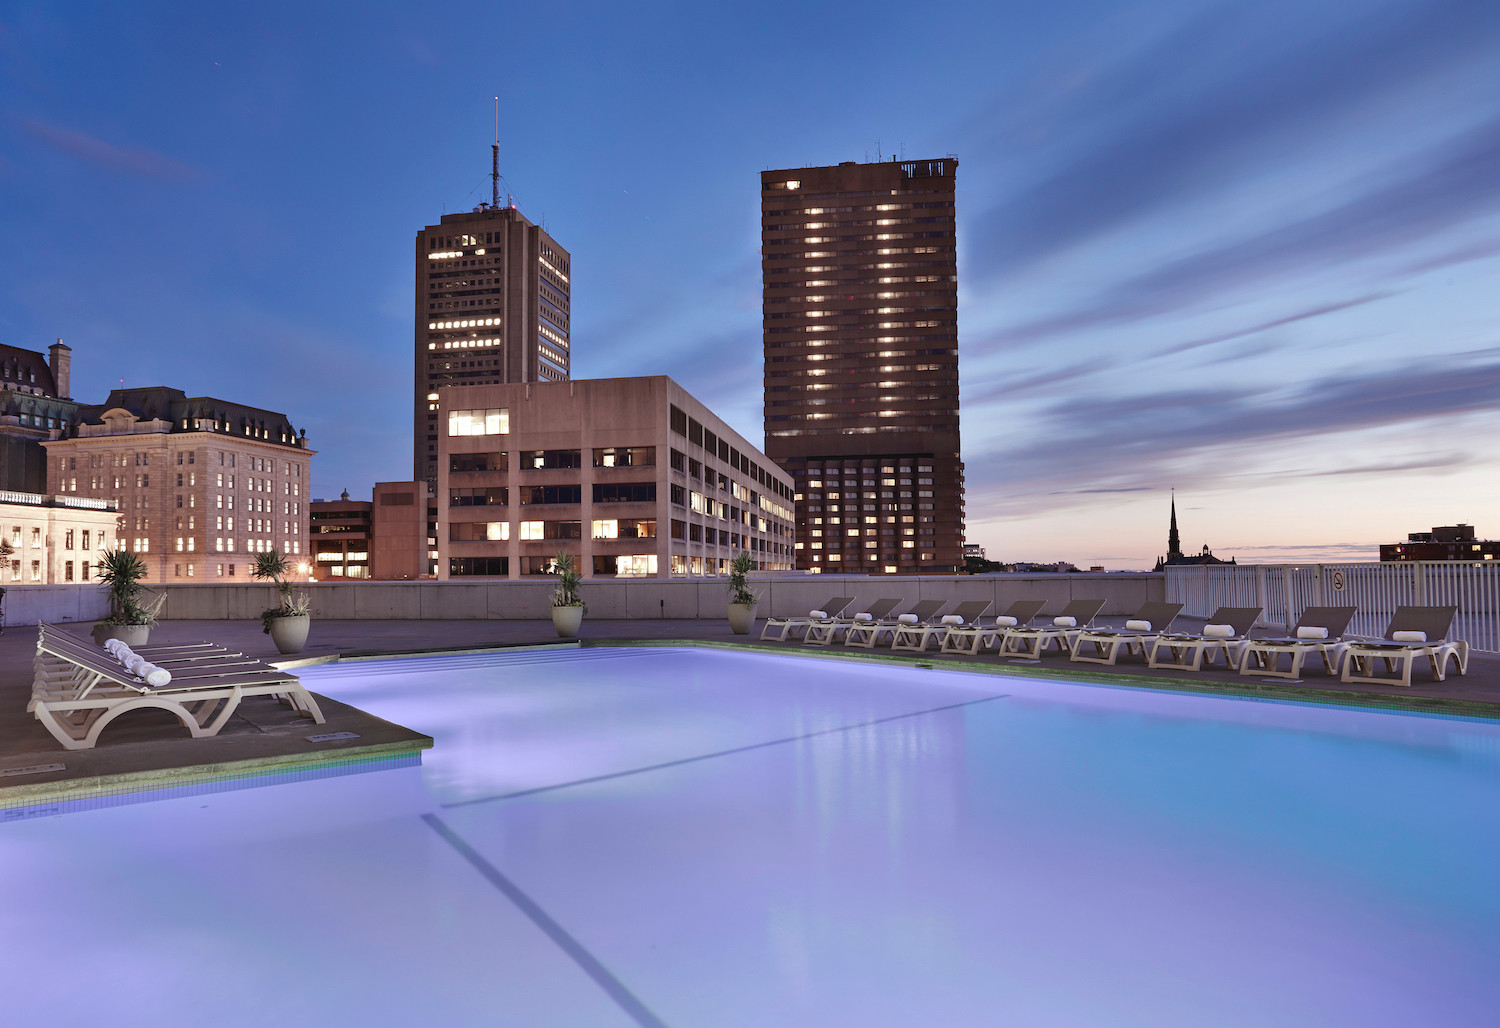 Rooftop heated outdoor pool open year-round